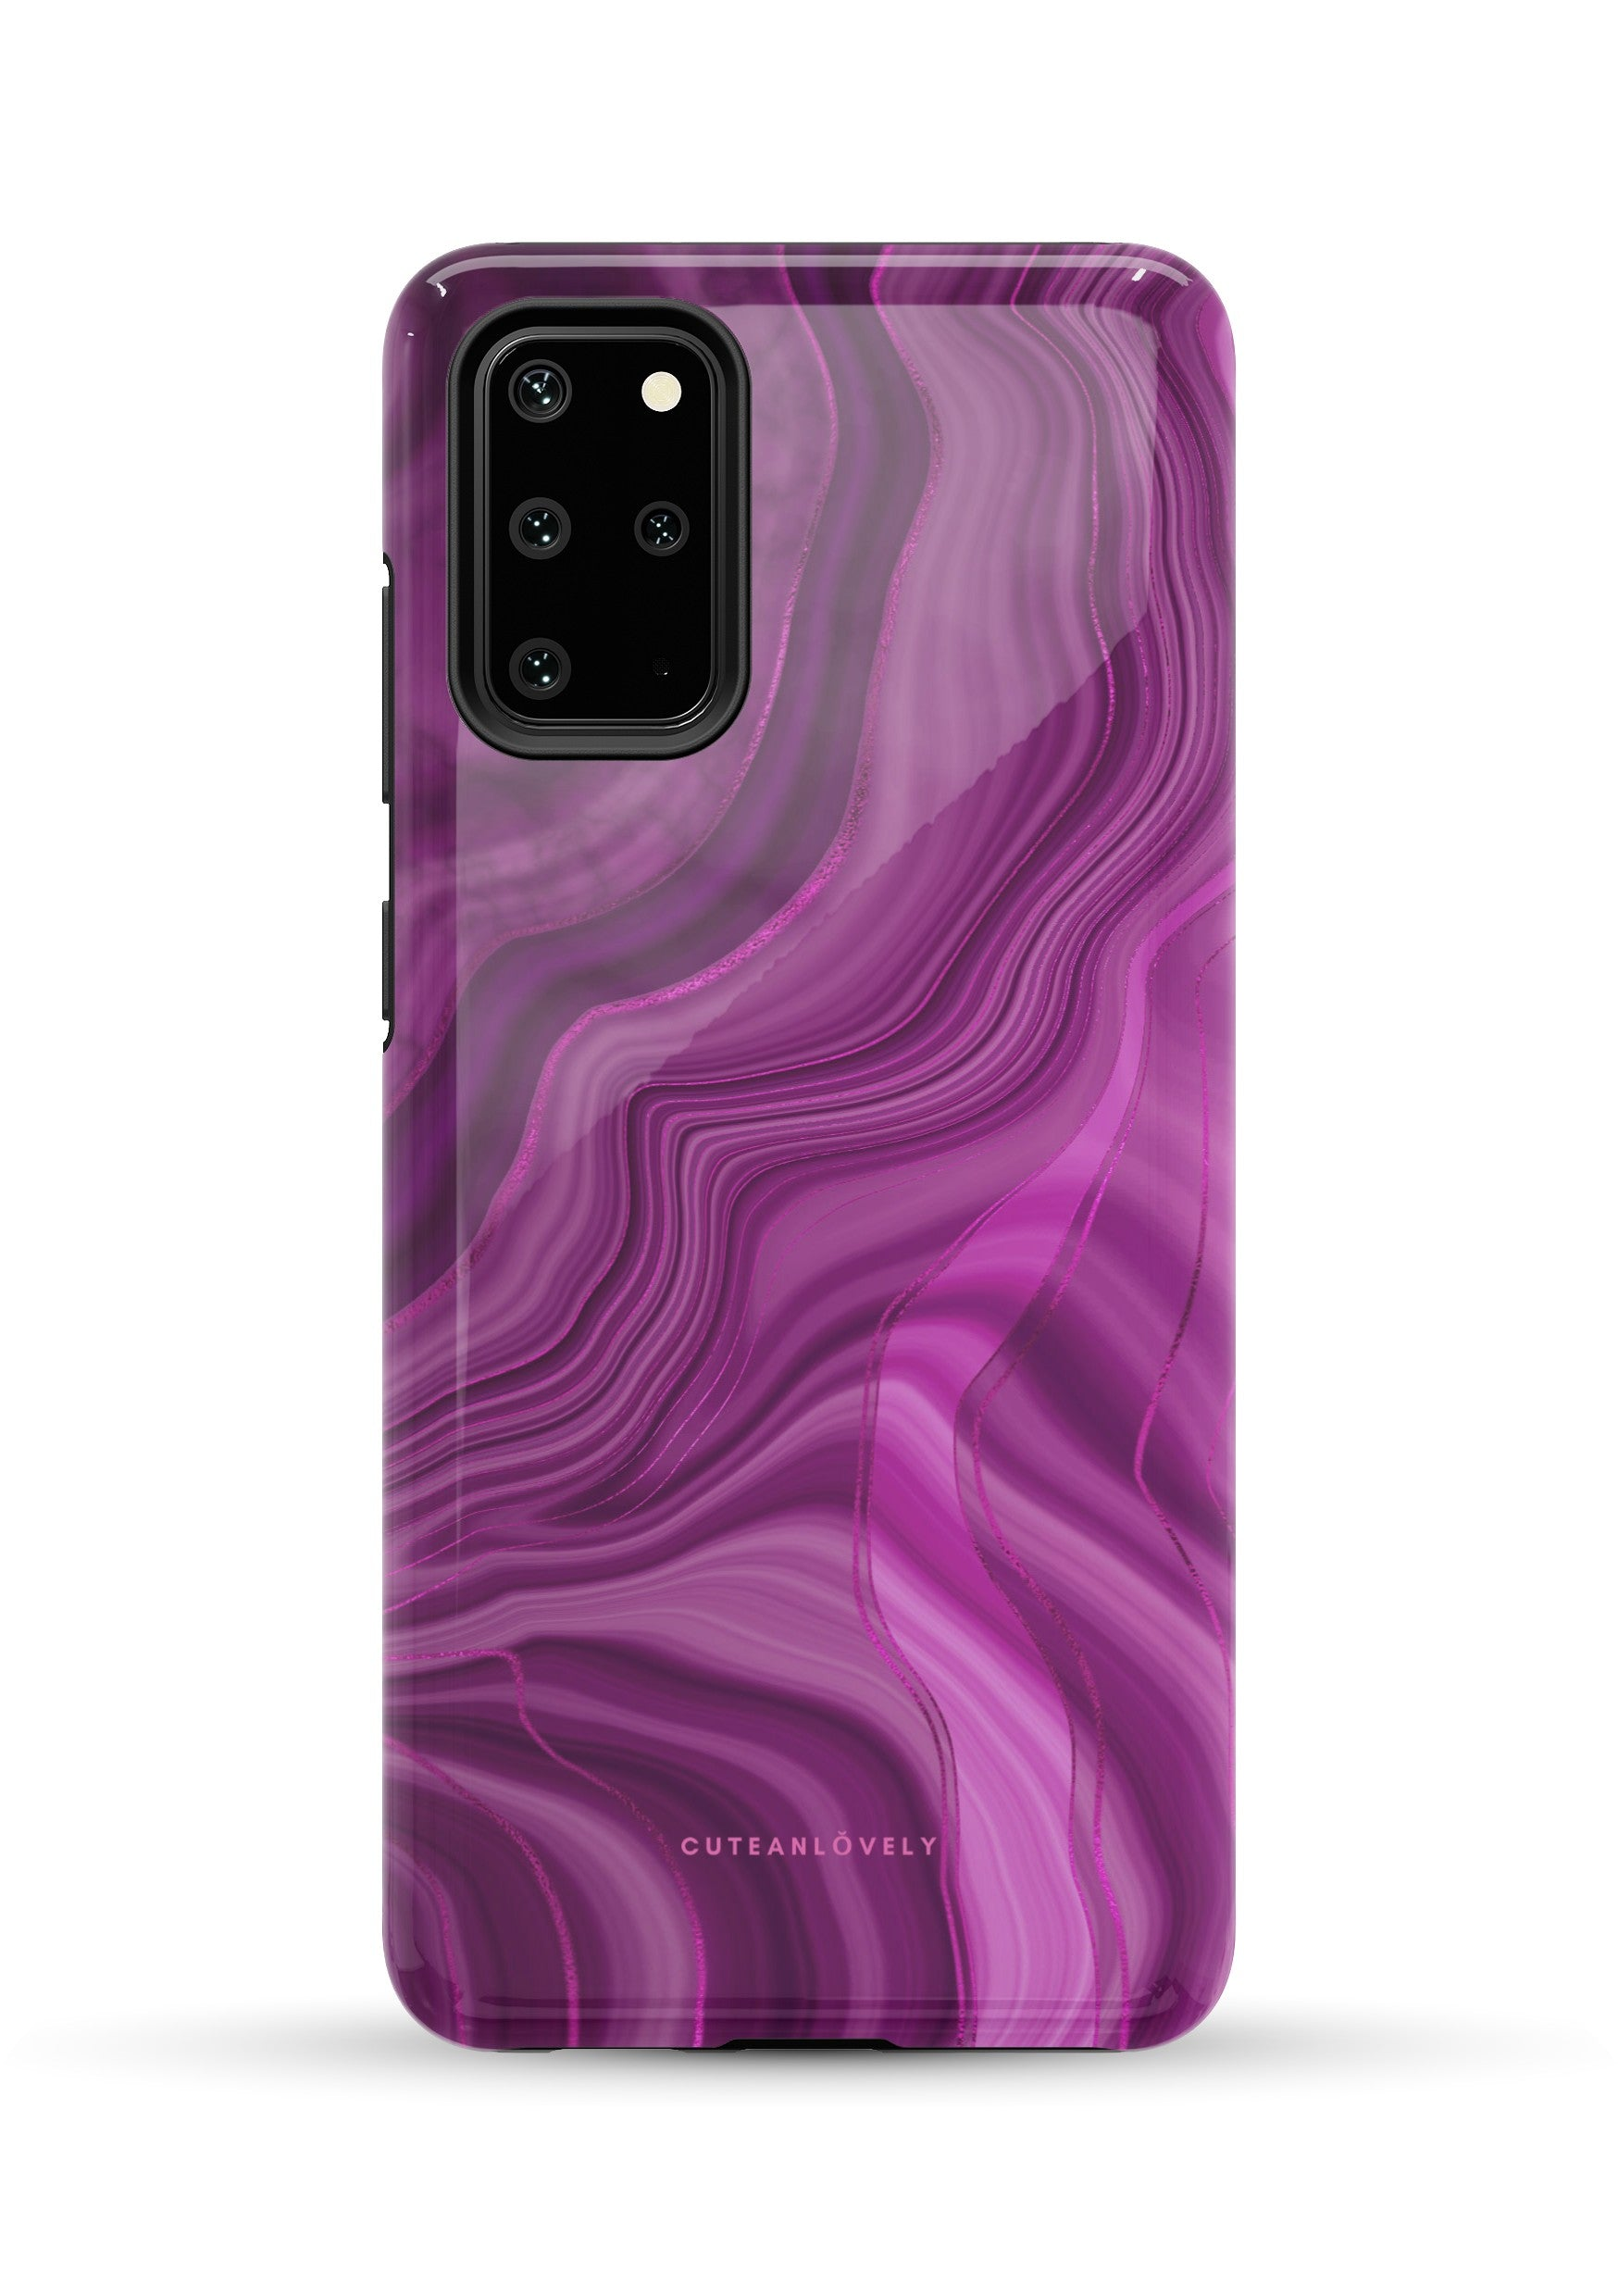 CUTEANLOVELY - Royal Purple Marble Samsung Galaxy Note S20 Plus Case